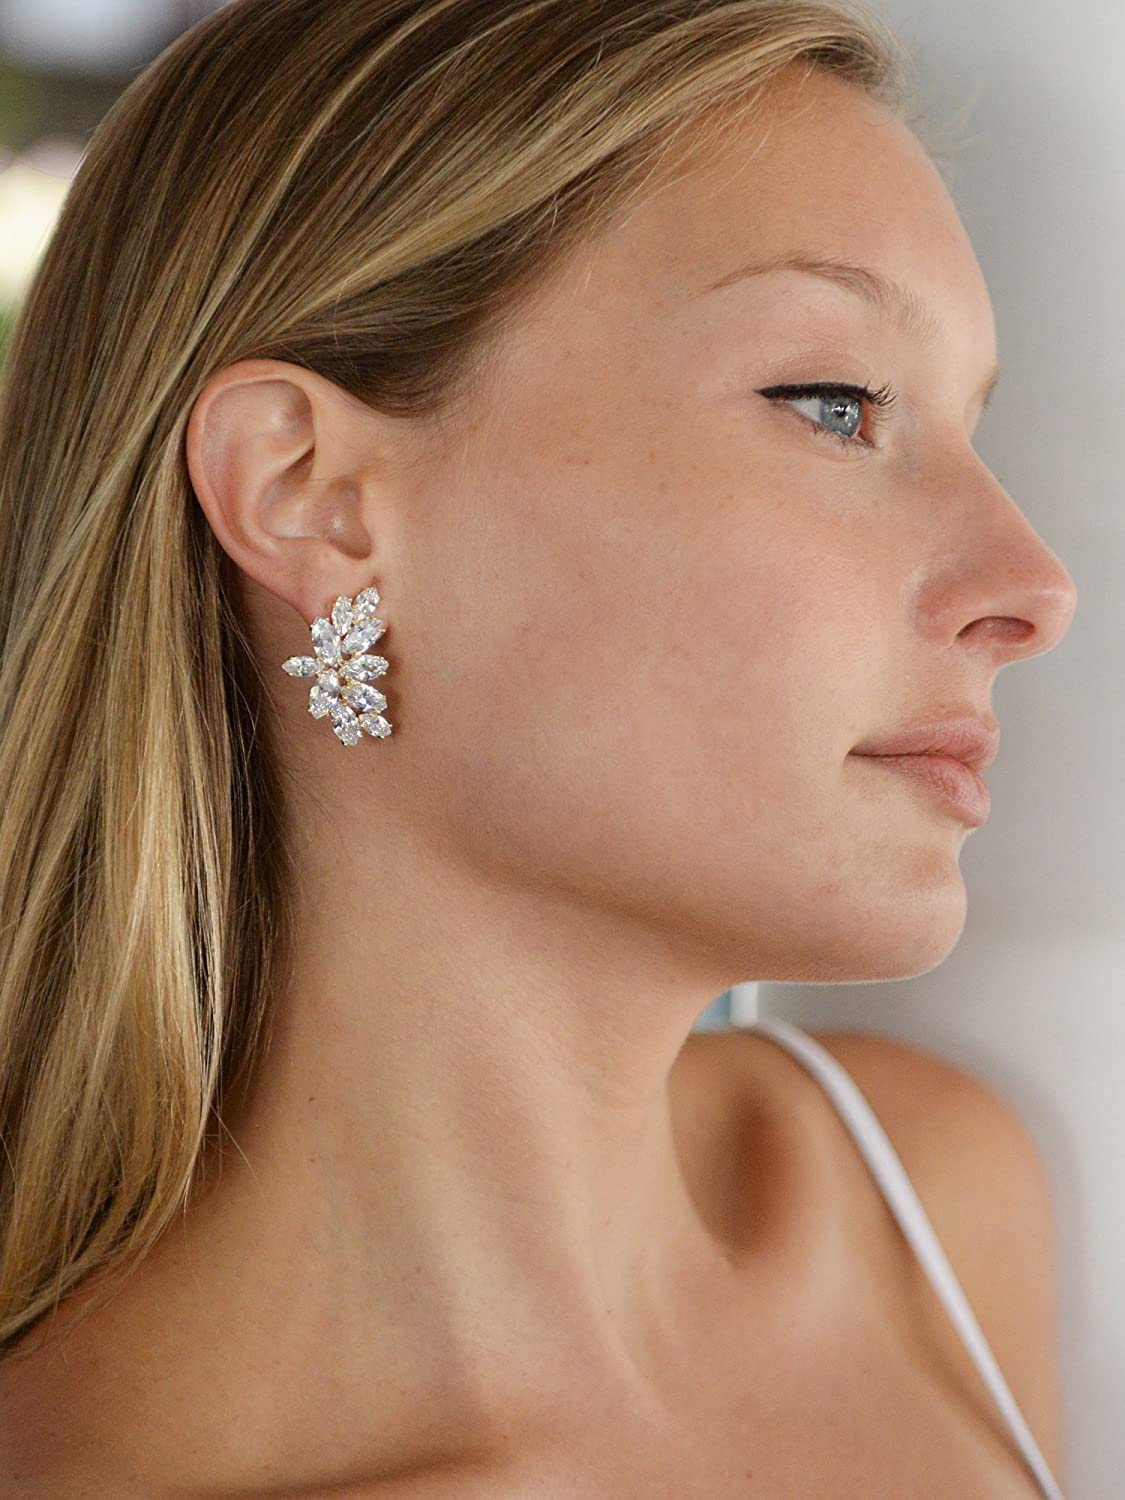 Mariell 14K Gold Plated CZ Clip-On Earrings with Marquis-Cut Clusters - Bridal, Wedding & Mother of Bride